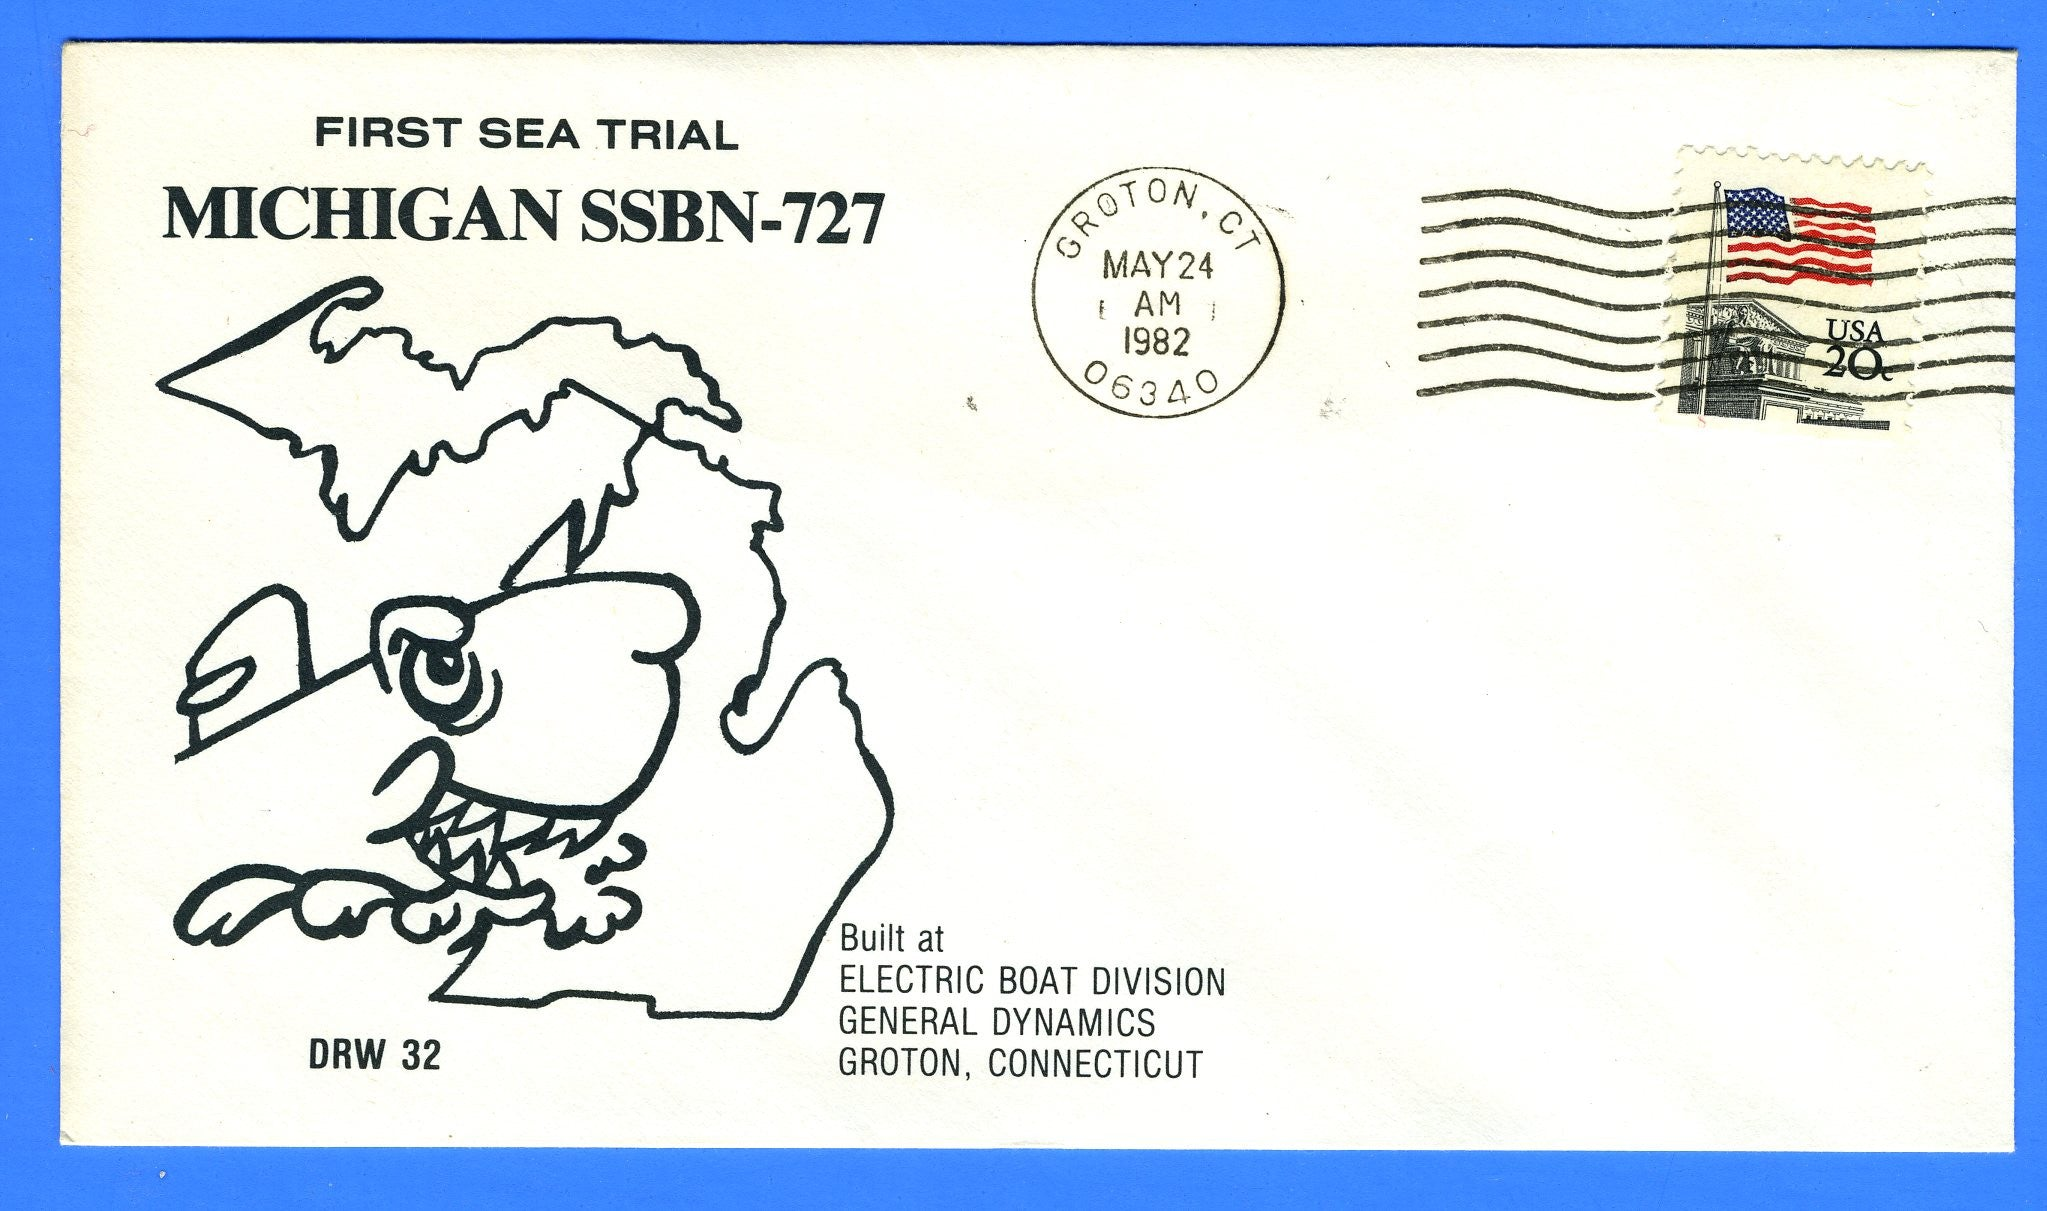 USS Michigan SSBN-727 First Sea Trial May 24, 1982 - DRW 32